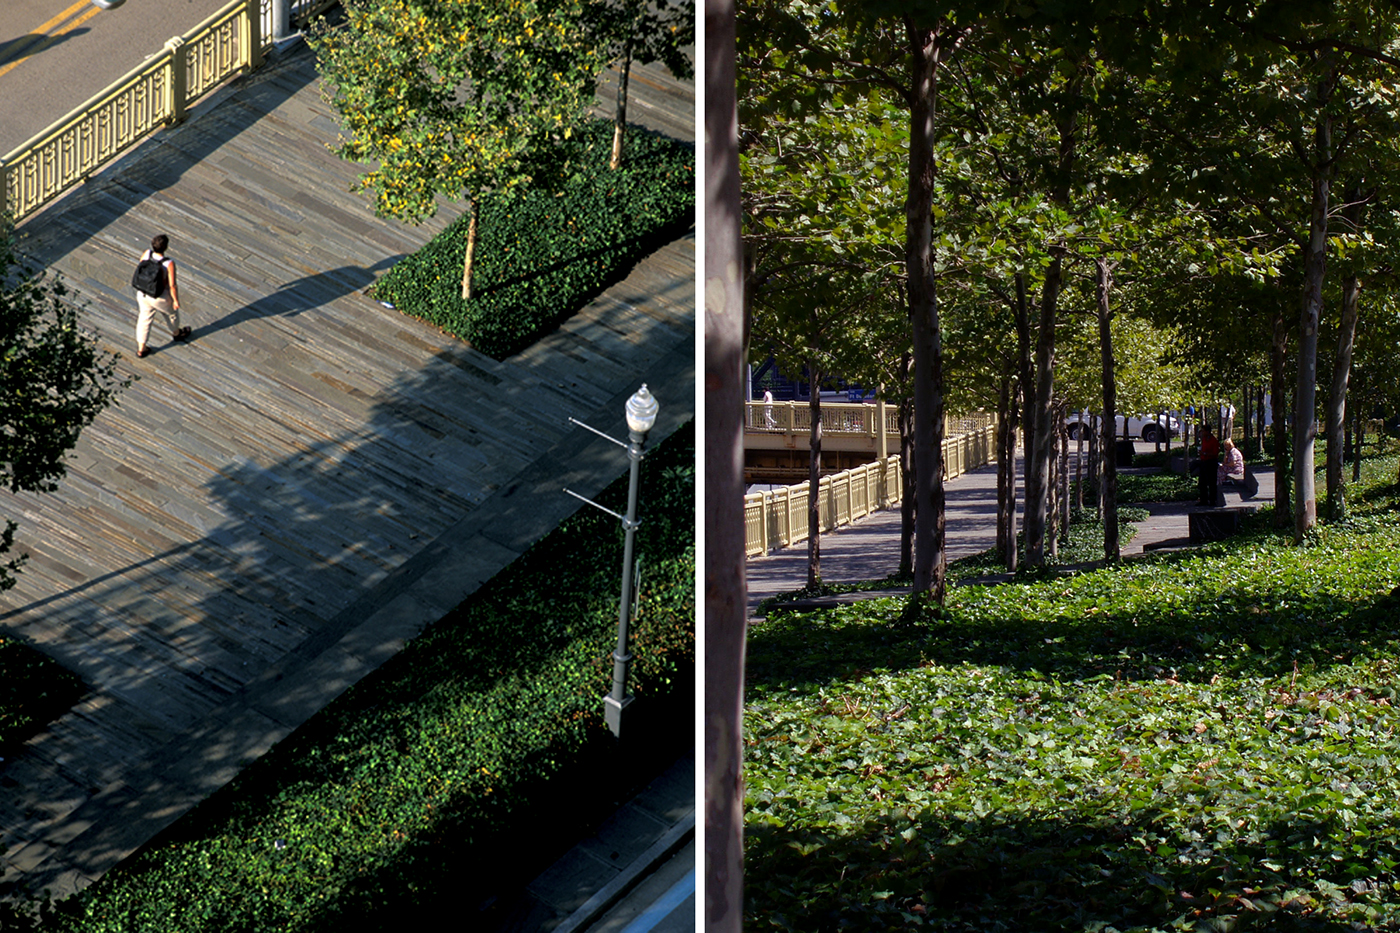 Upper park esplanade stone walkway  (left),  plantings and seating  (right)